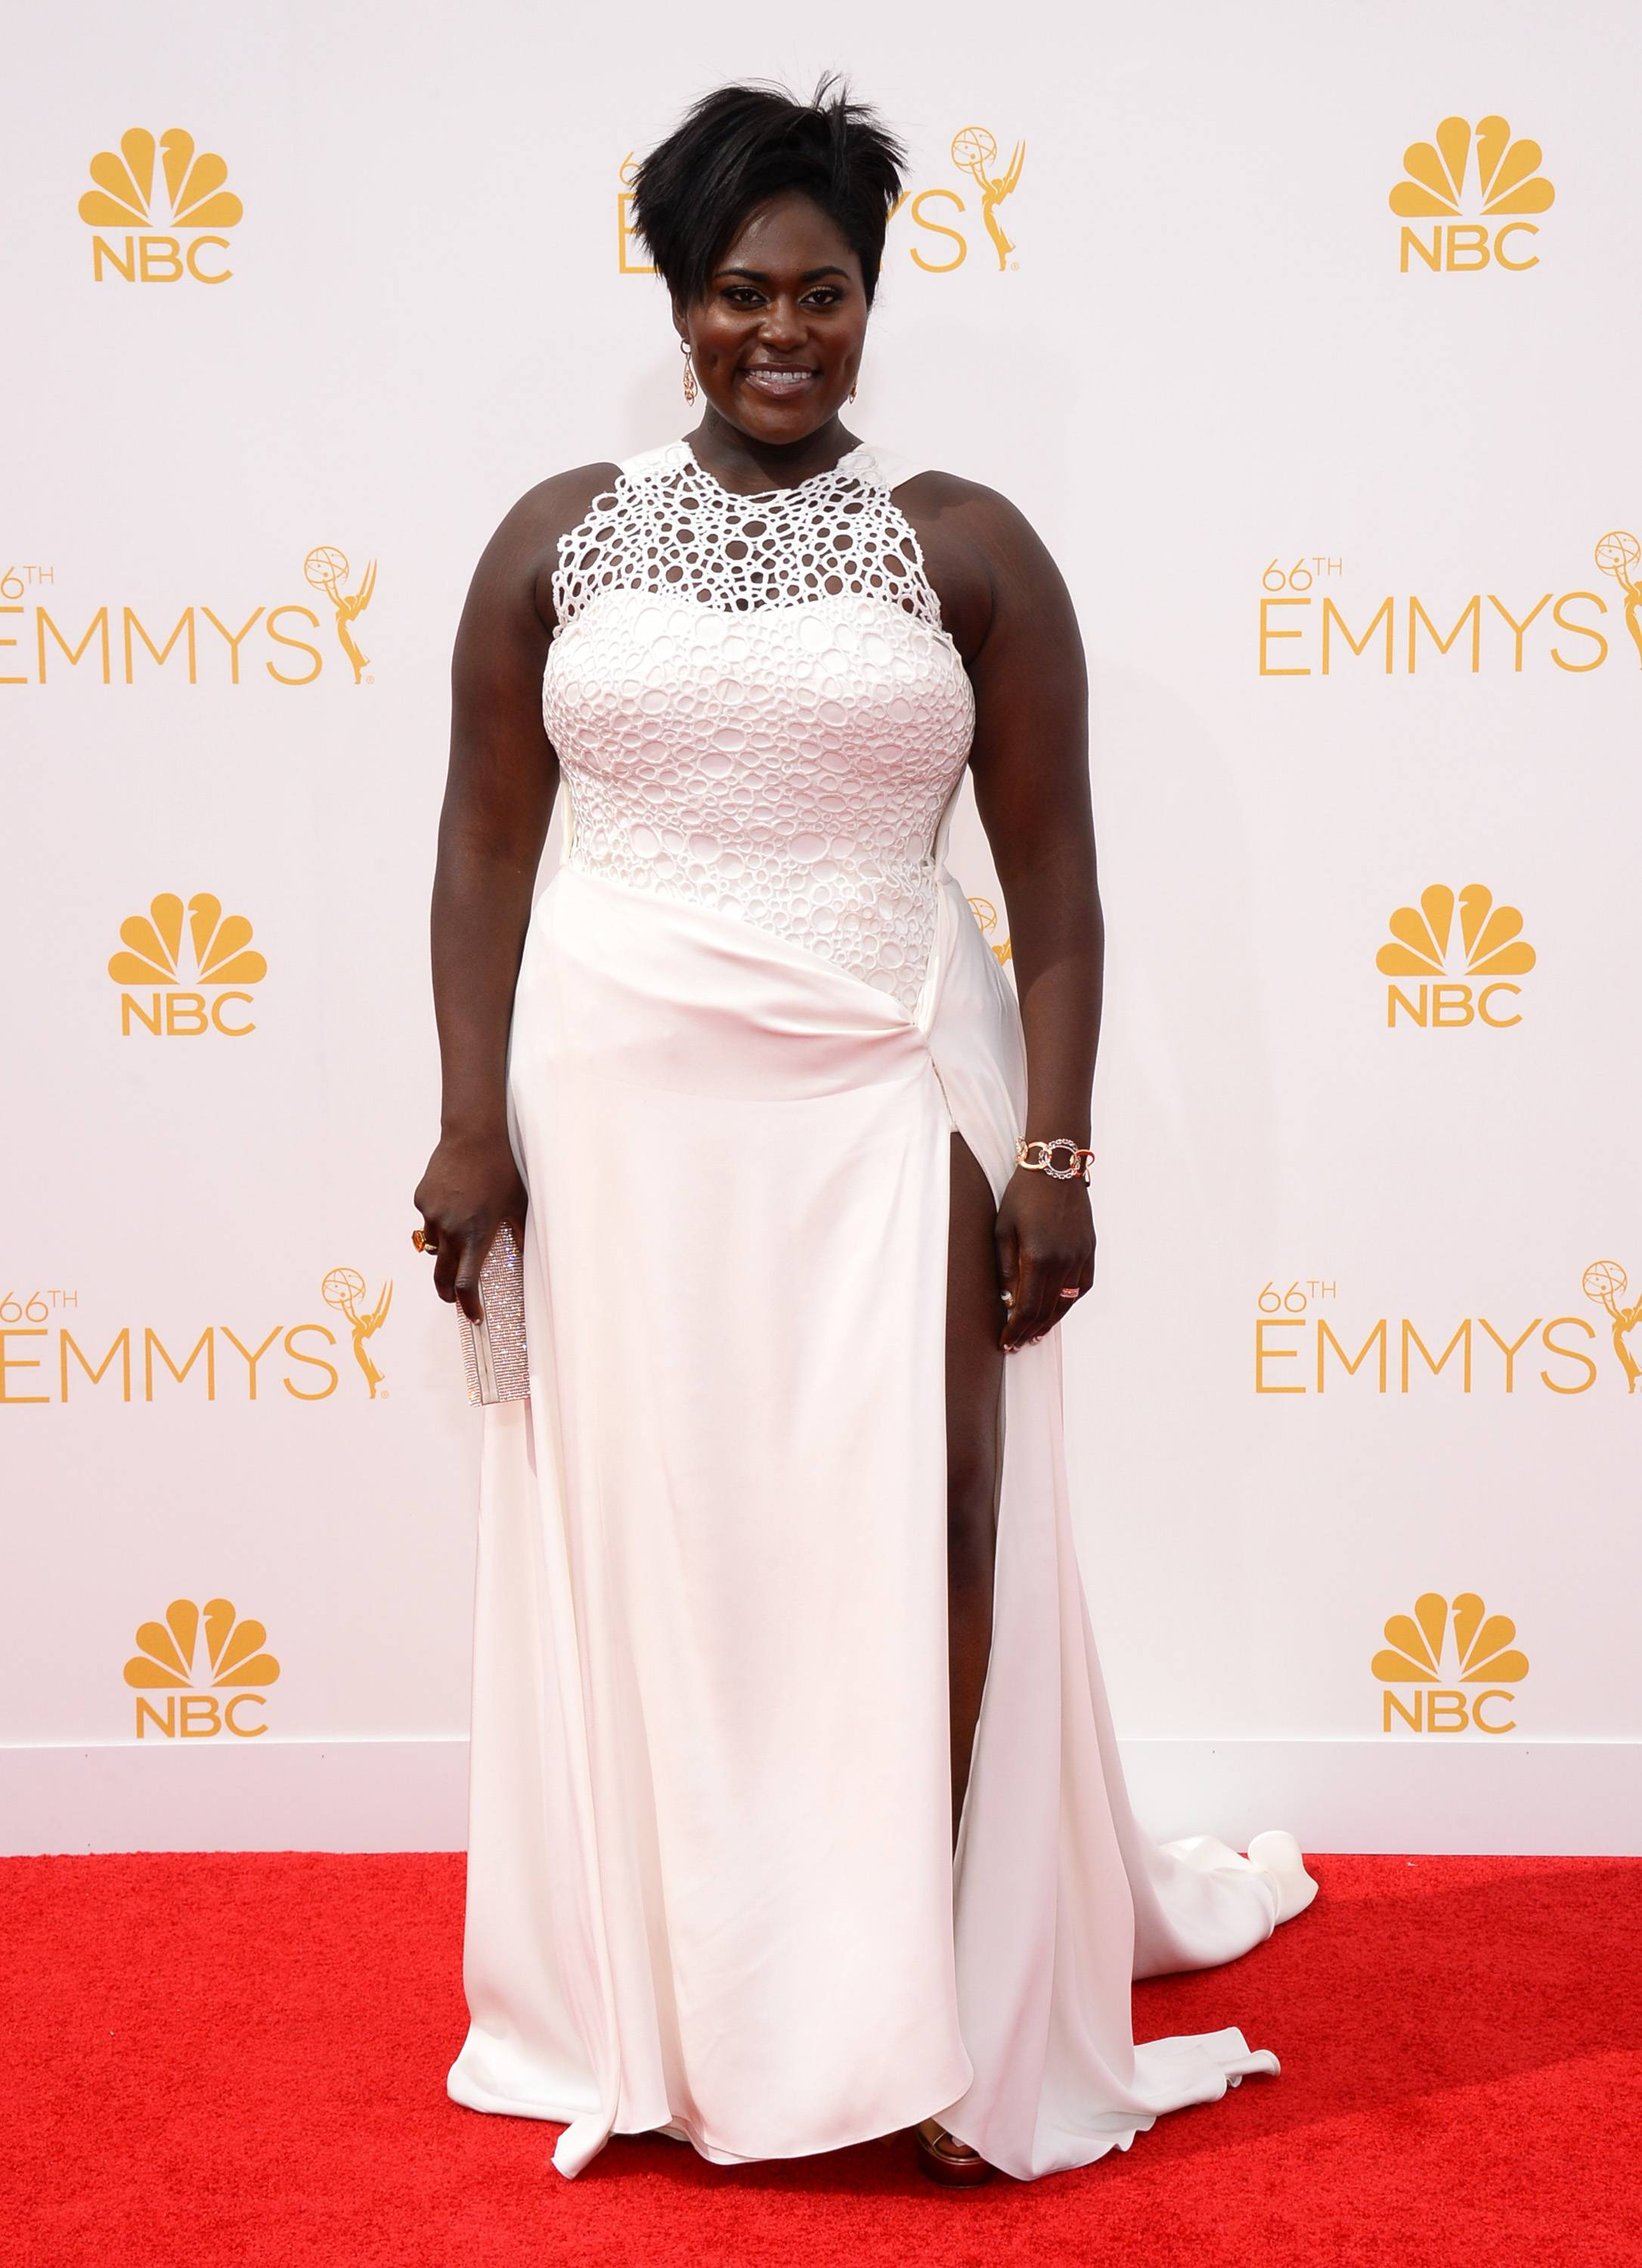 Danielle Brooks arrives at the 66th Annual Primetime Emmy Awards at the Nokia Theatre.